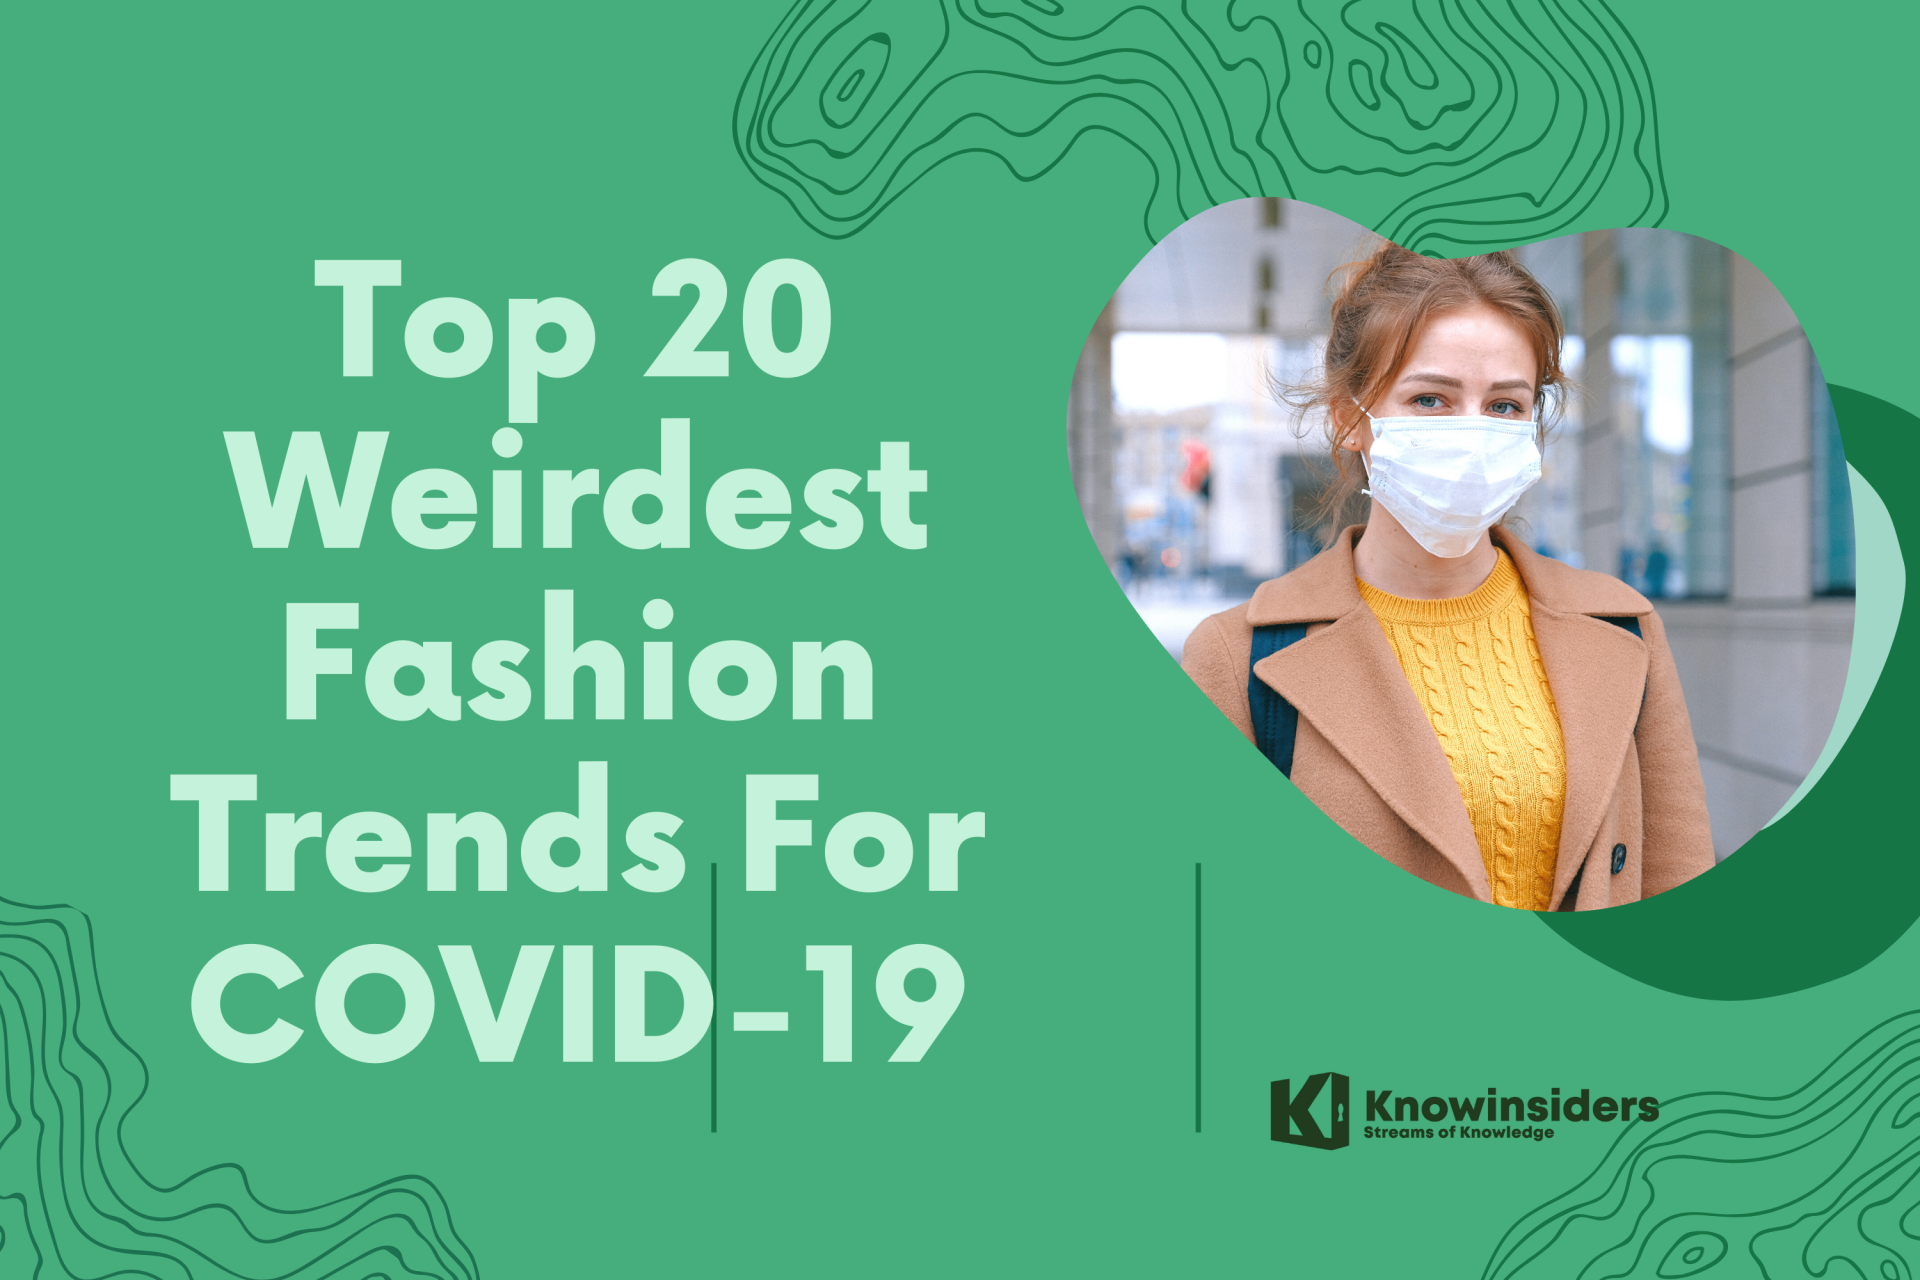 Top 10 Weirdest Fashion Trends During COVID-19 Pandemic